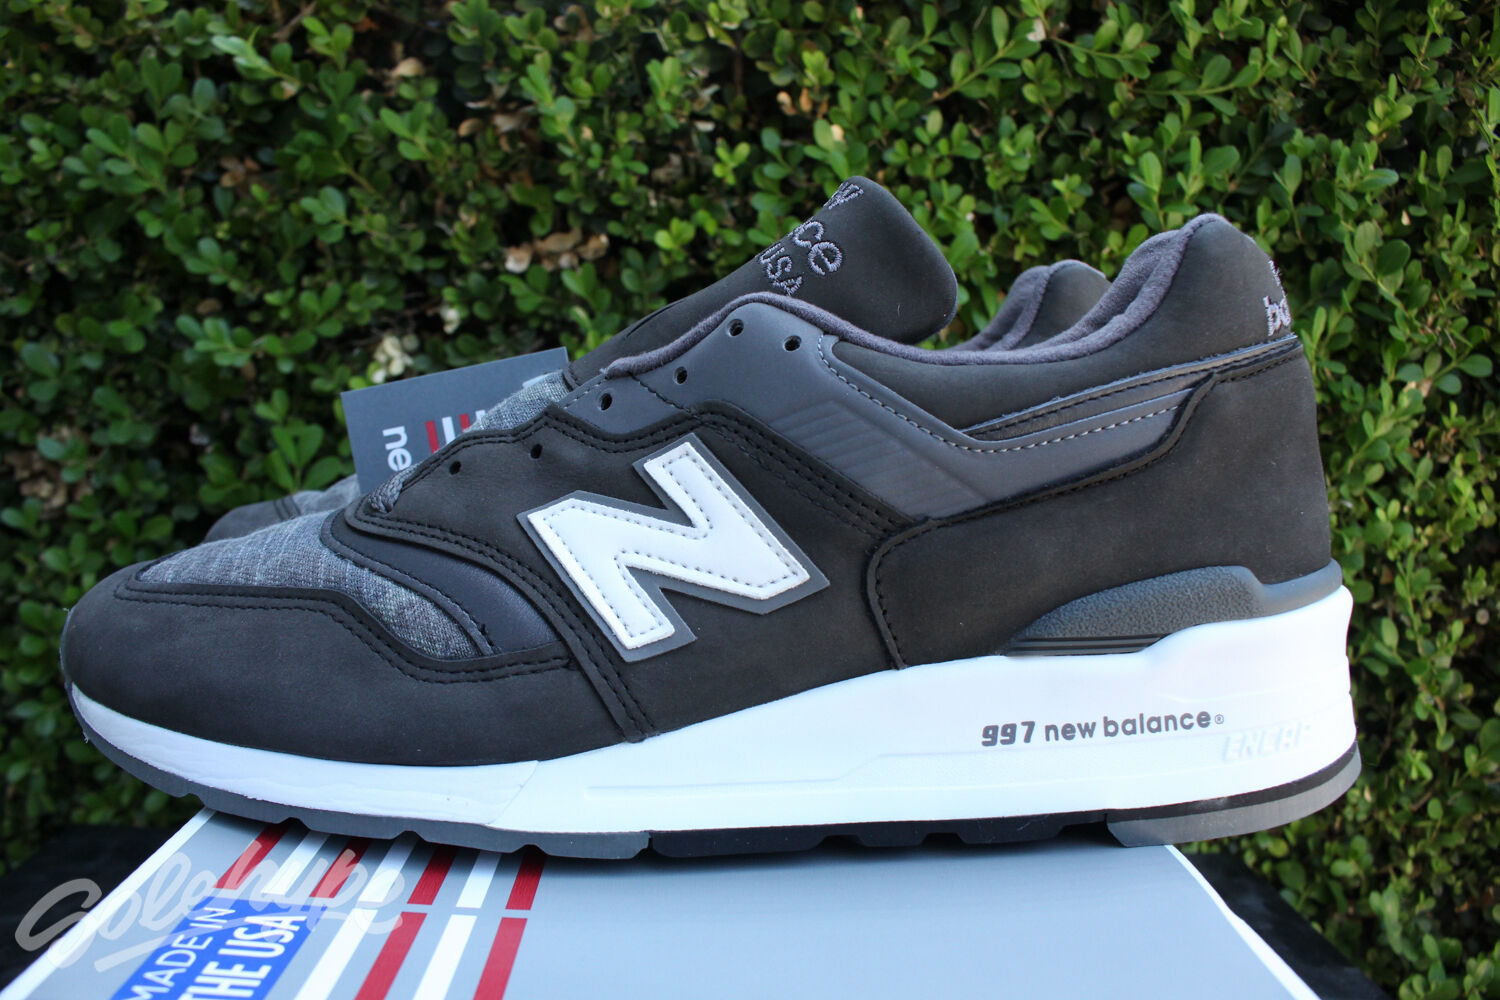 NEW BALANCE 997 PREMIUM SZ 7.5 PIGSKIN MADE IN USA GRAY MAGNET GREY M997DPA